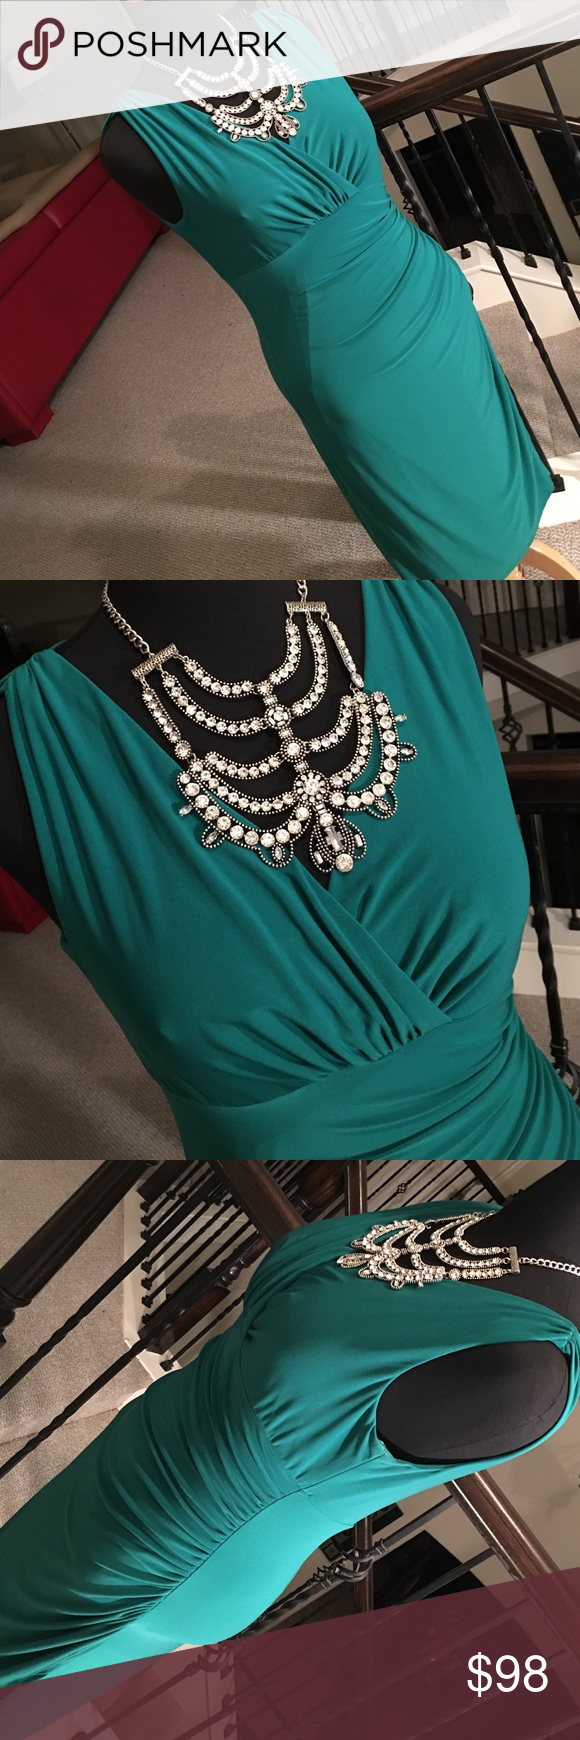 Majestic jade green dress by Ralph Lauren! This beautiful pullover V-neck dress, in jade green is sleeveless, it has a ruched left side a super flattering waistline. faux slit on the side, faux wrap look. Yes it is absolutely perfect for your holiday party! Ralph Lauren Dresses